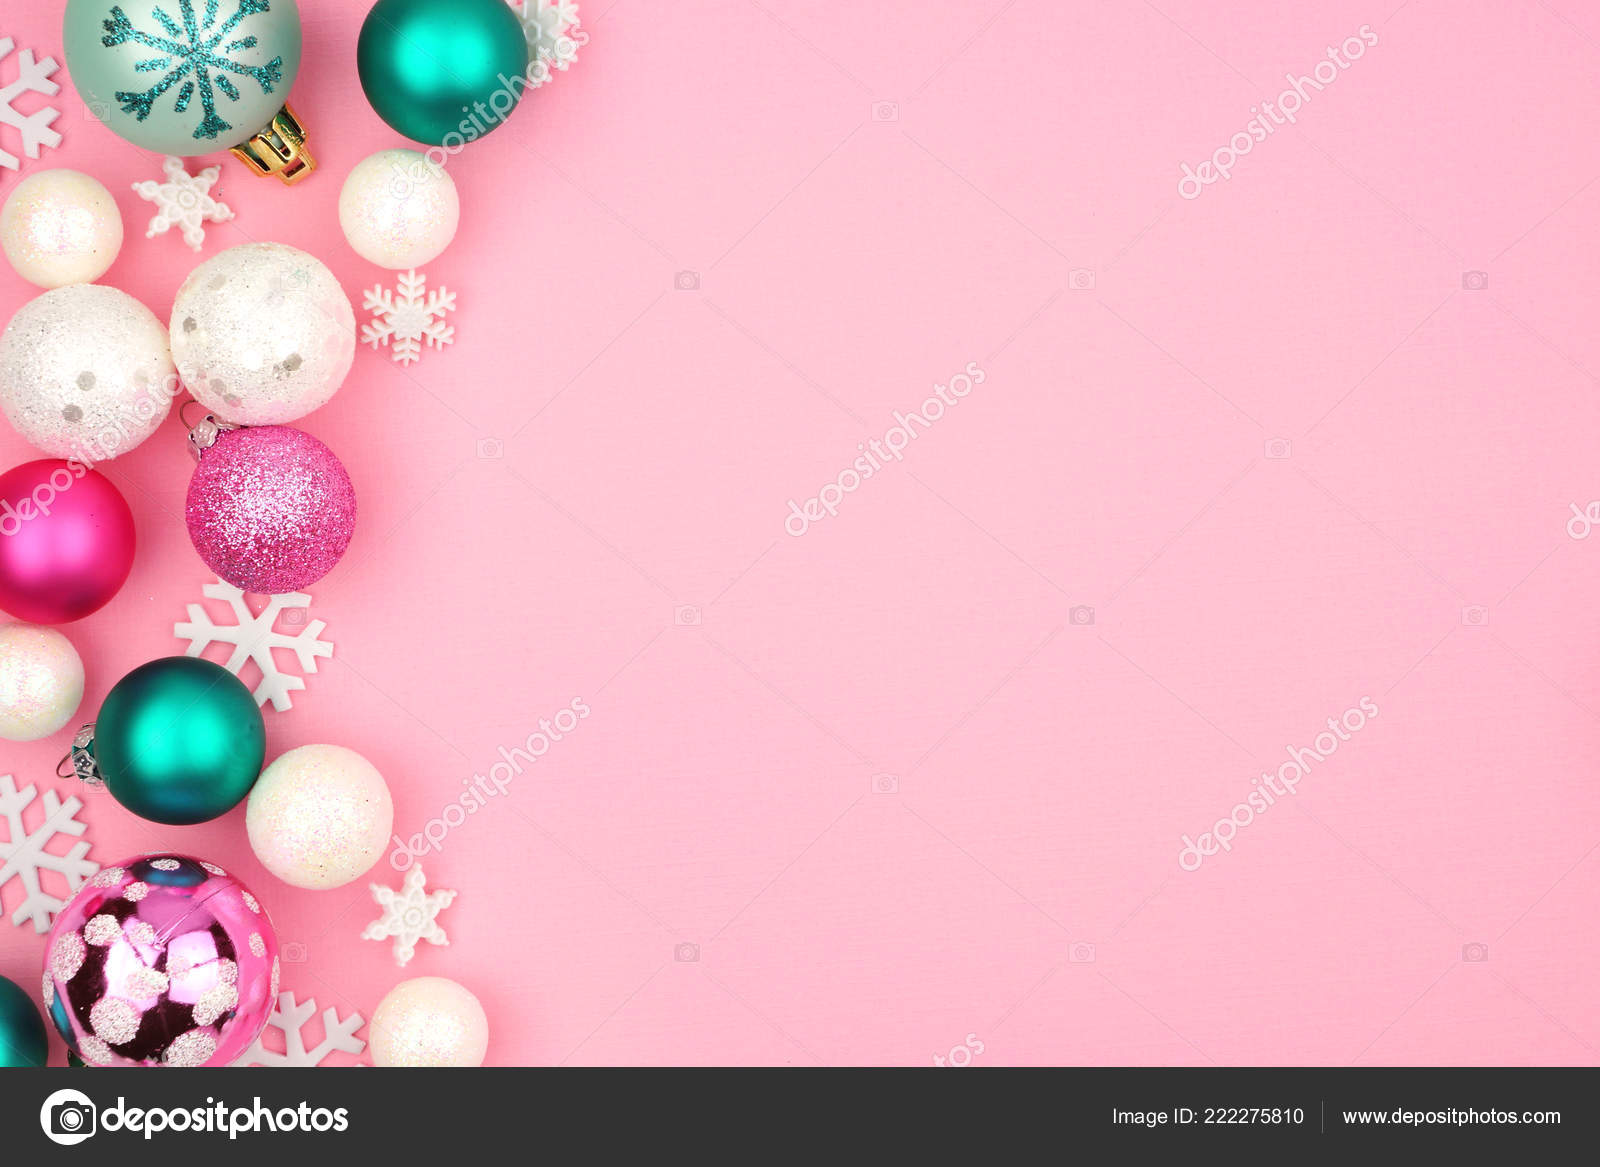 Modern Pastel Christmas Bauble Side Border Light Pink